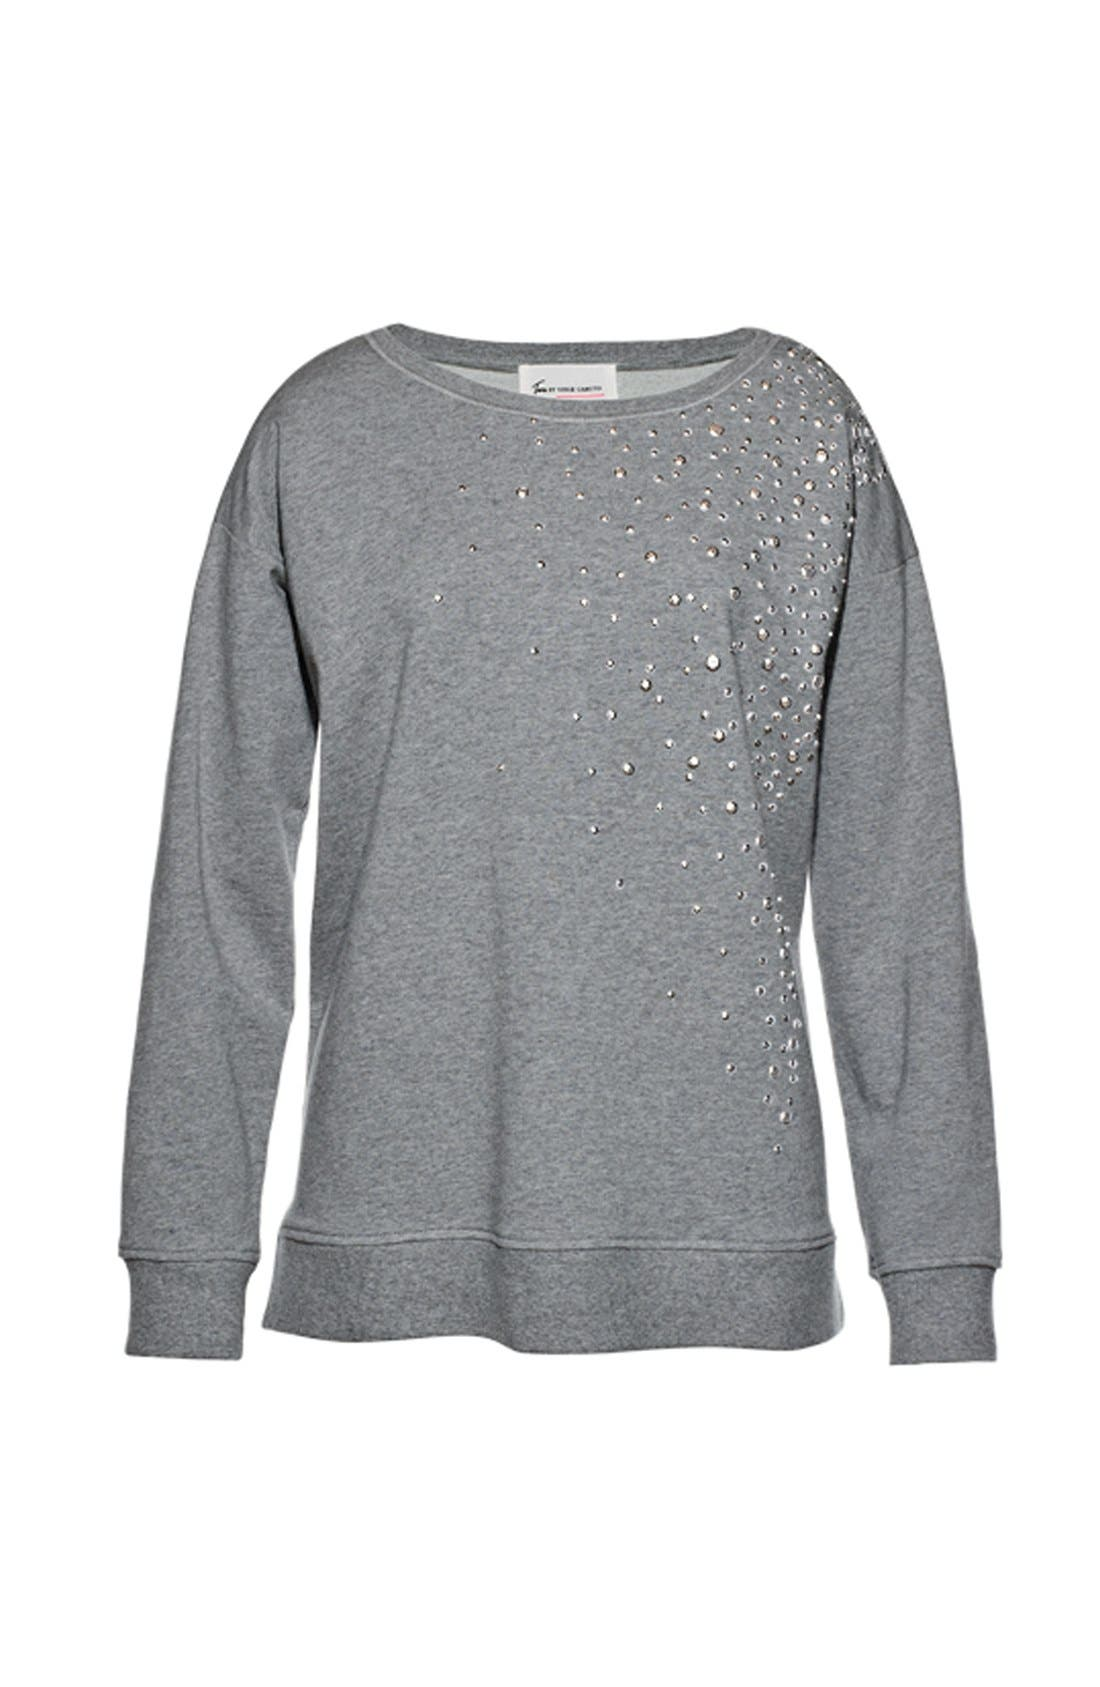 Alternate Image 4  - Two by Vince Camuto Embellished Sweatshirt